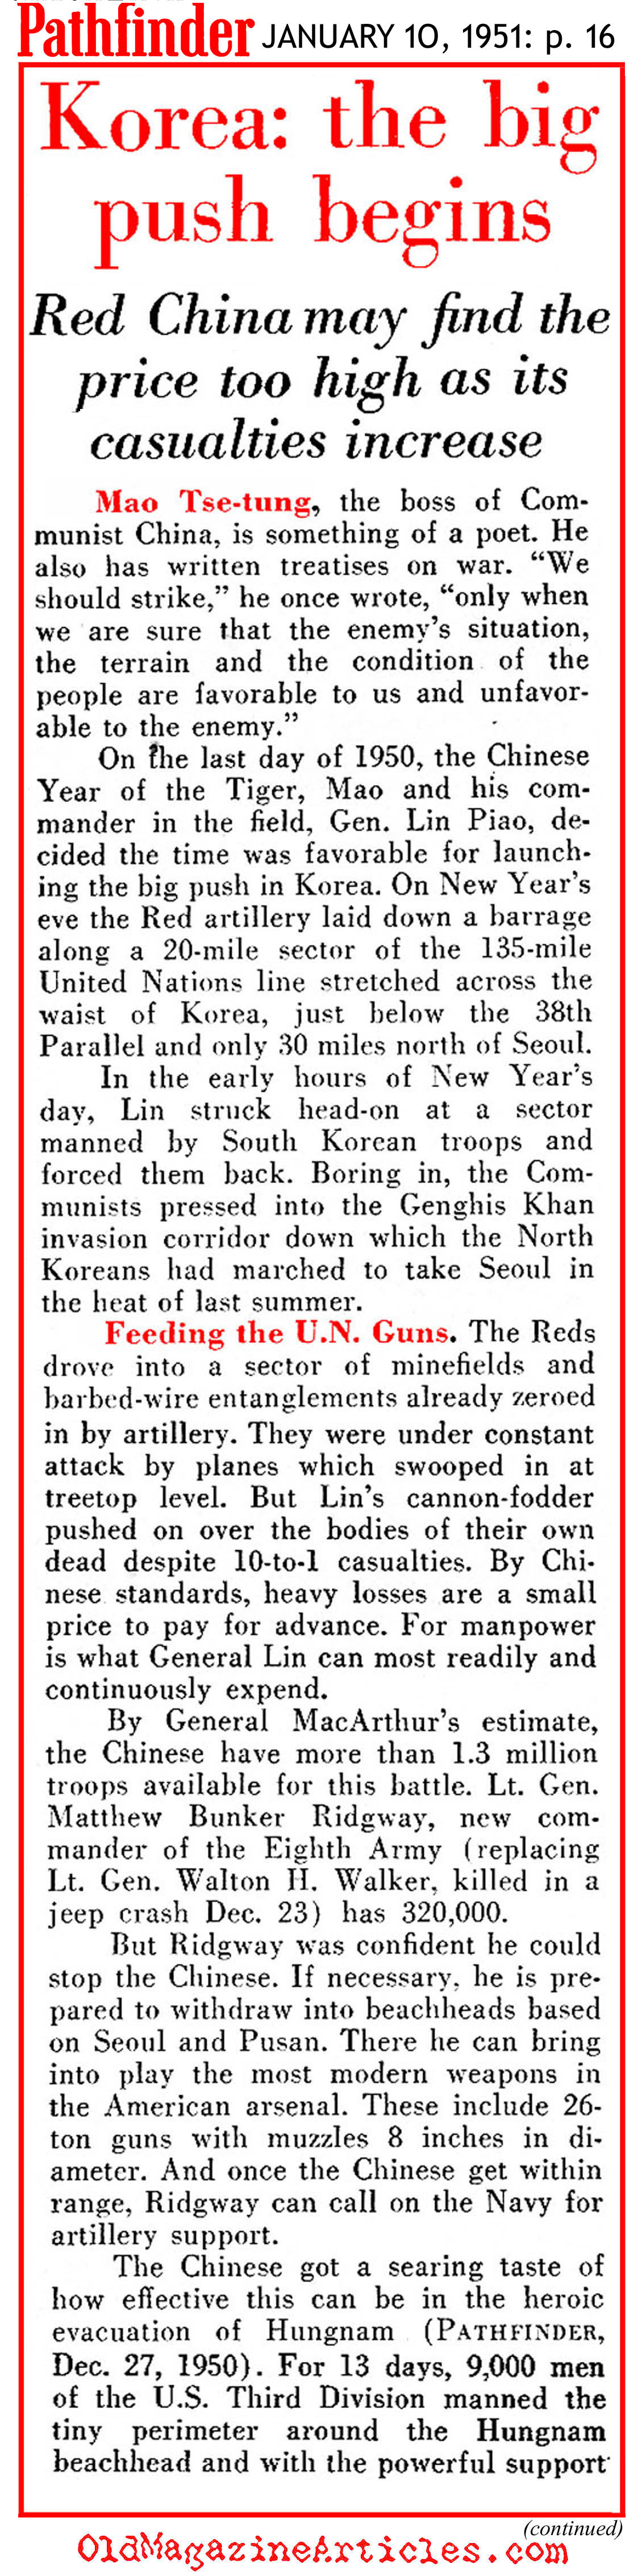 The North Korean Winter Offensive (Pathfinder Magazine, 1951)